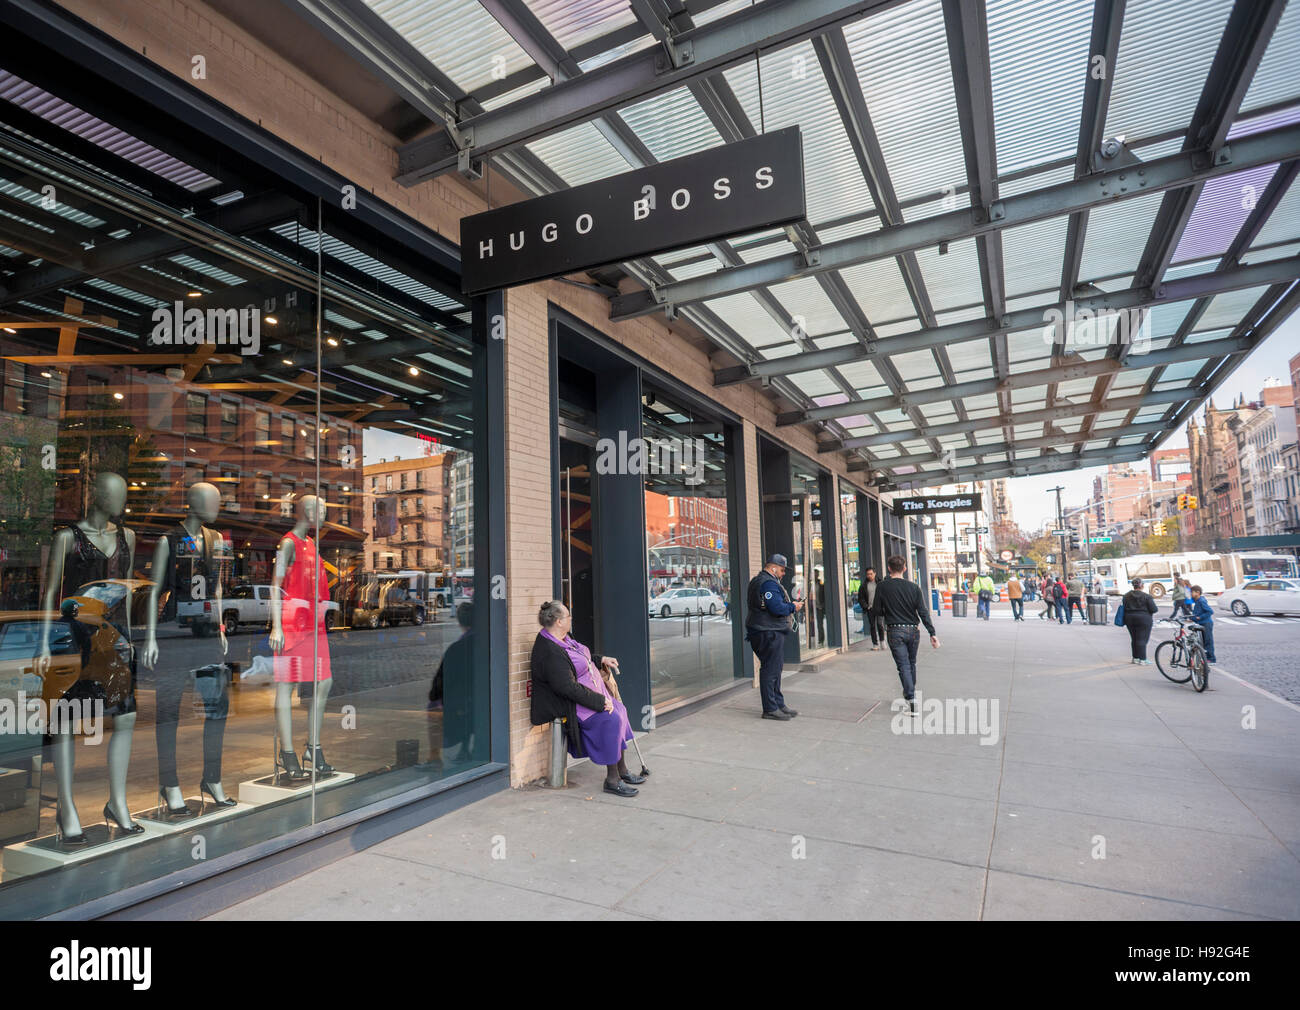 27cf1b10d11 A Hugo Boss store in the Meatpacking District in New York on Wednesday,  November 16